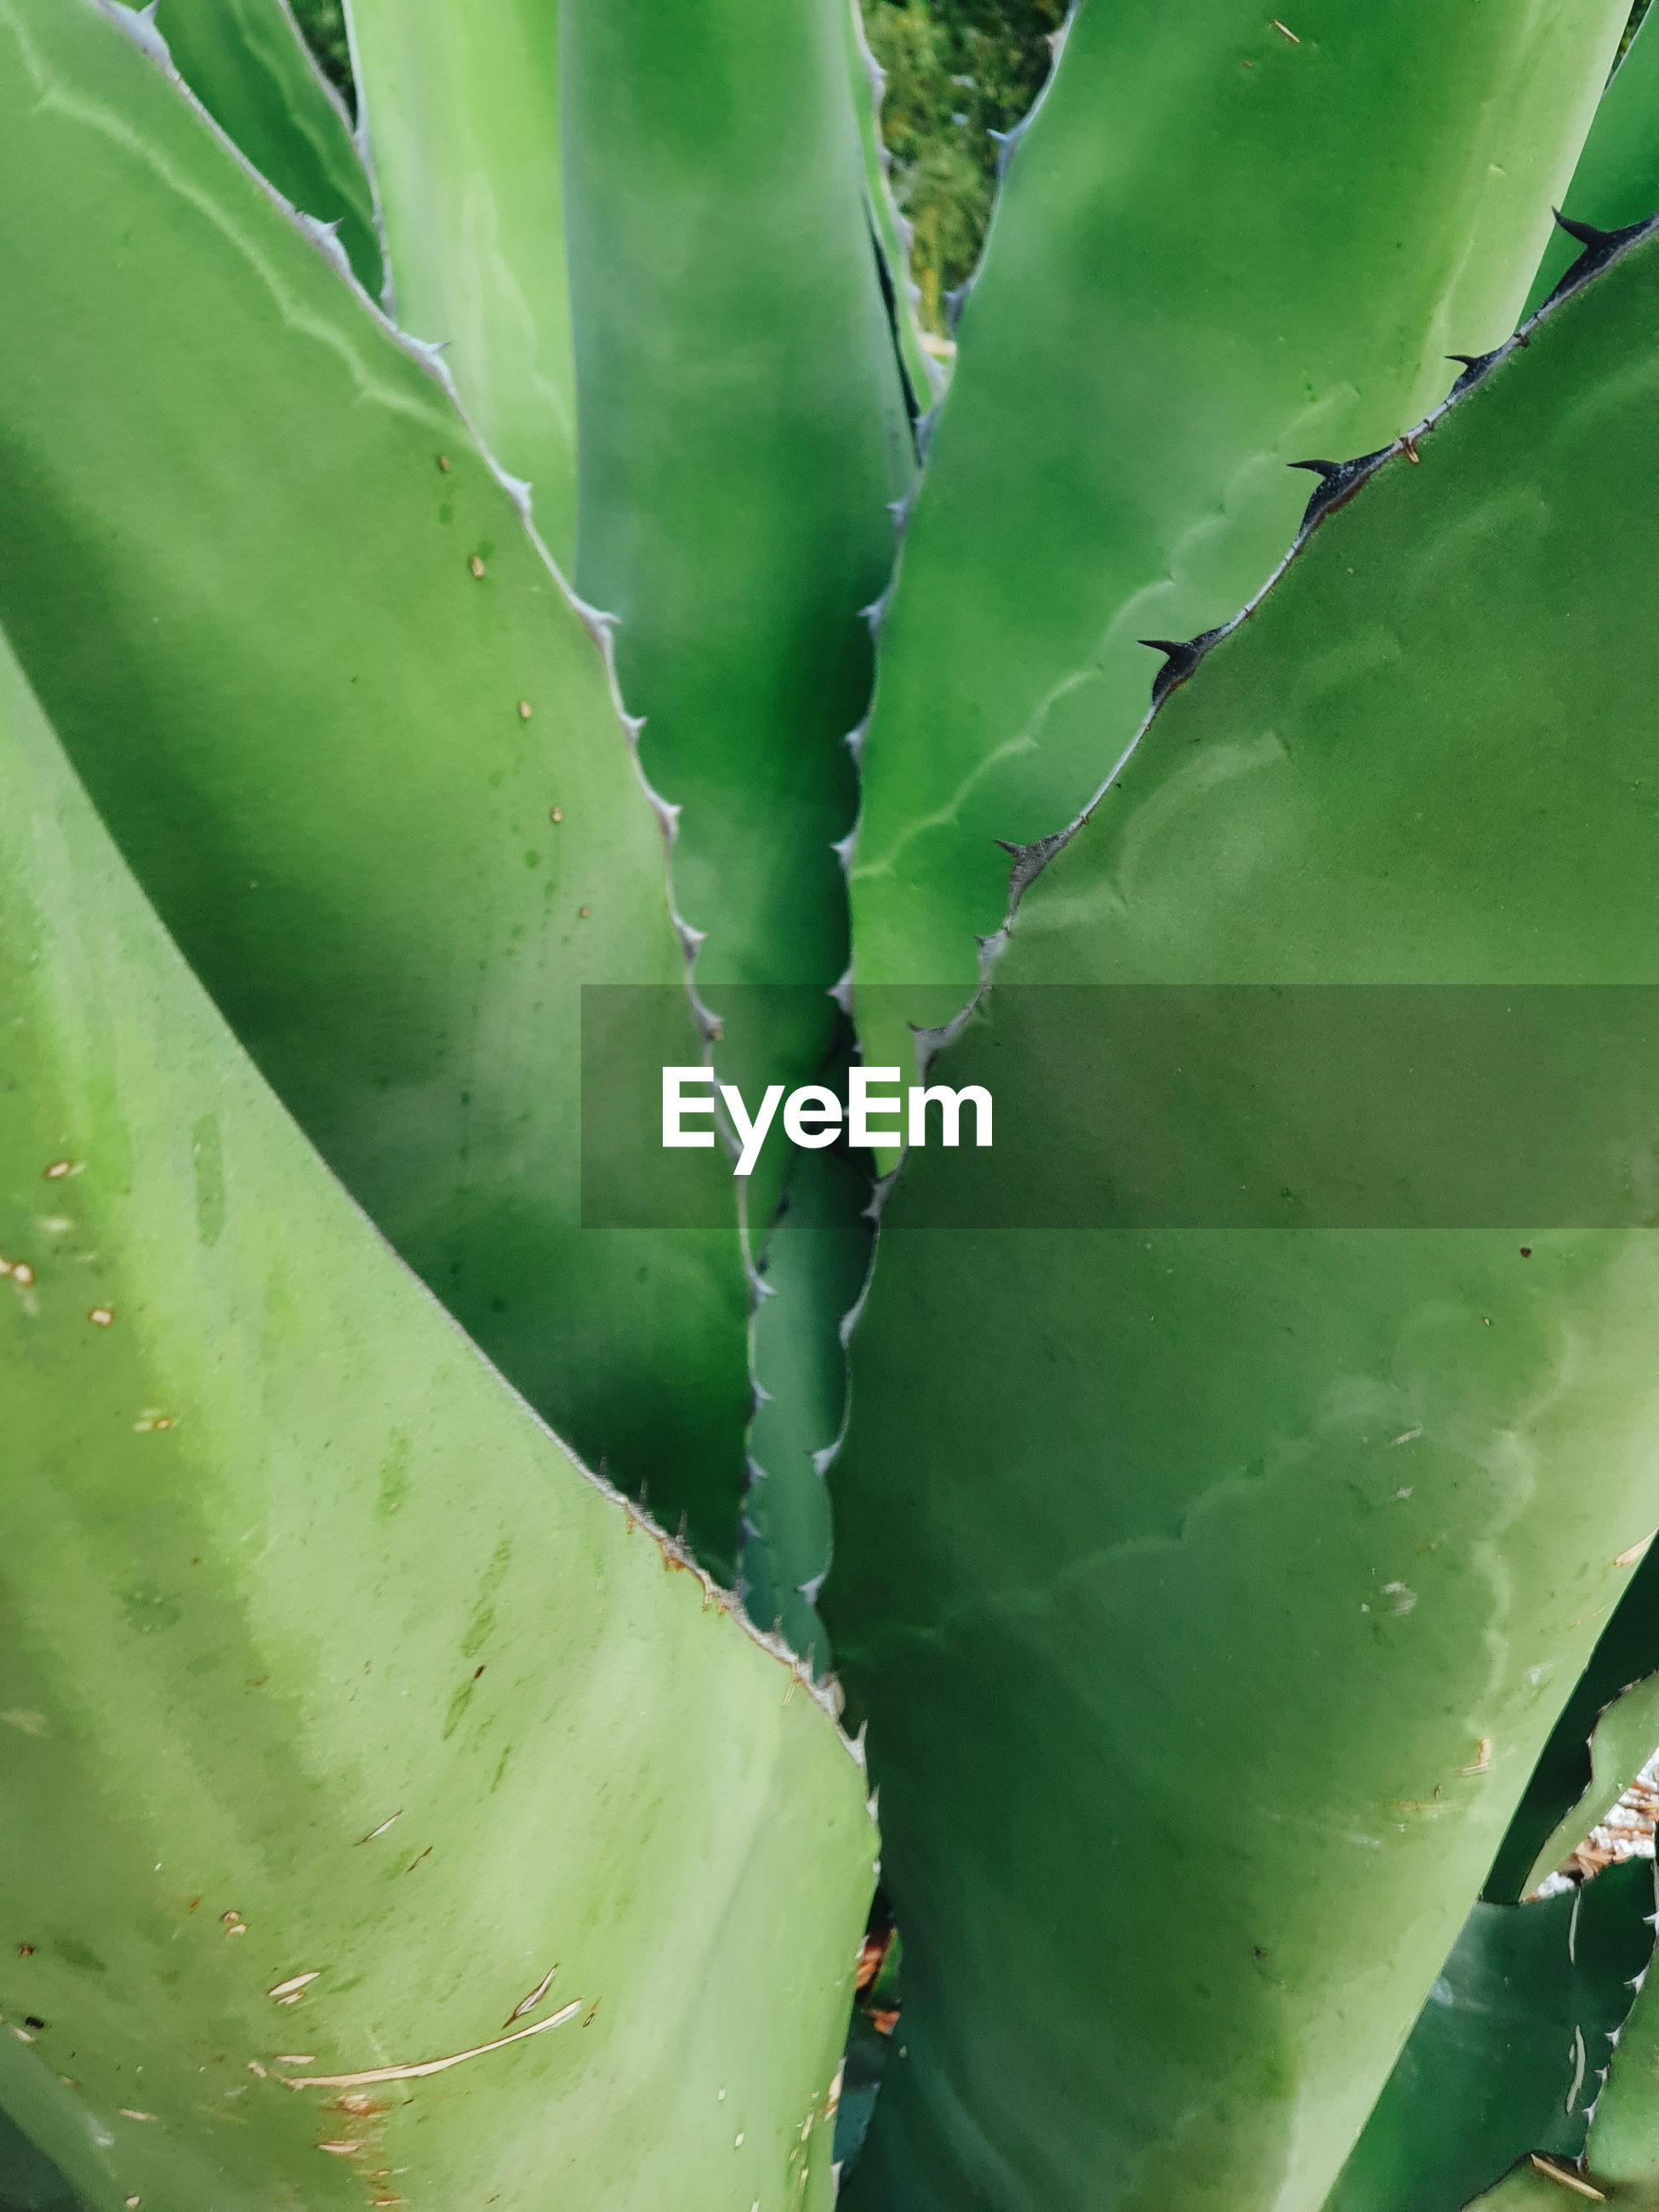 FULL FRAME OF SUCCULENT PLANT